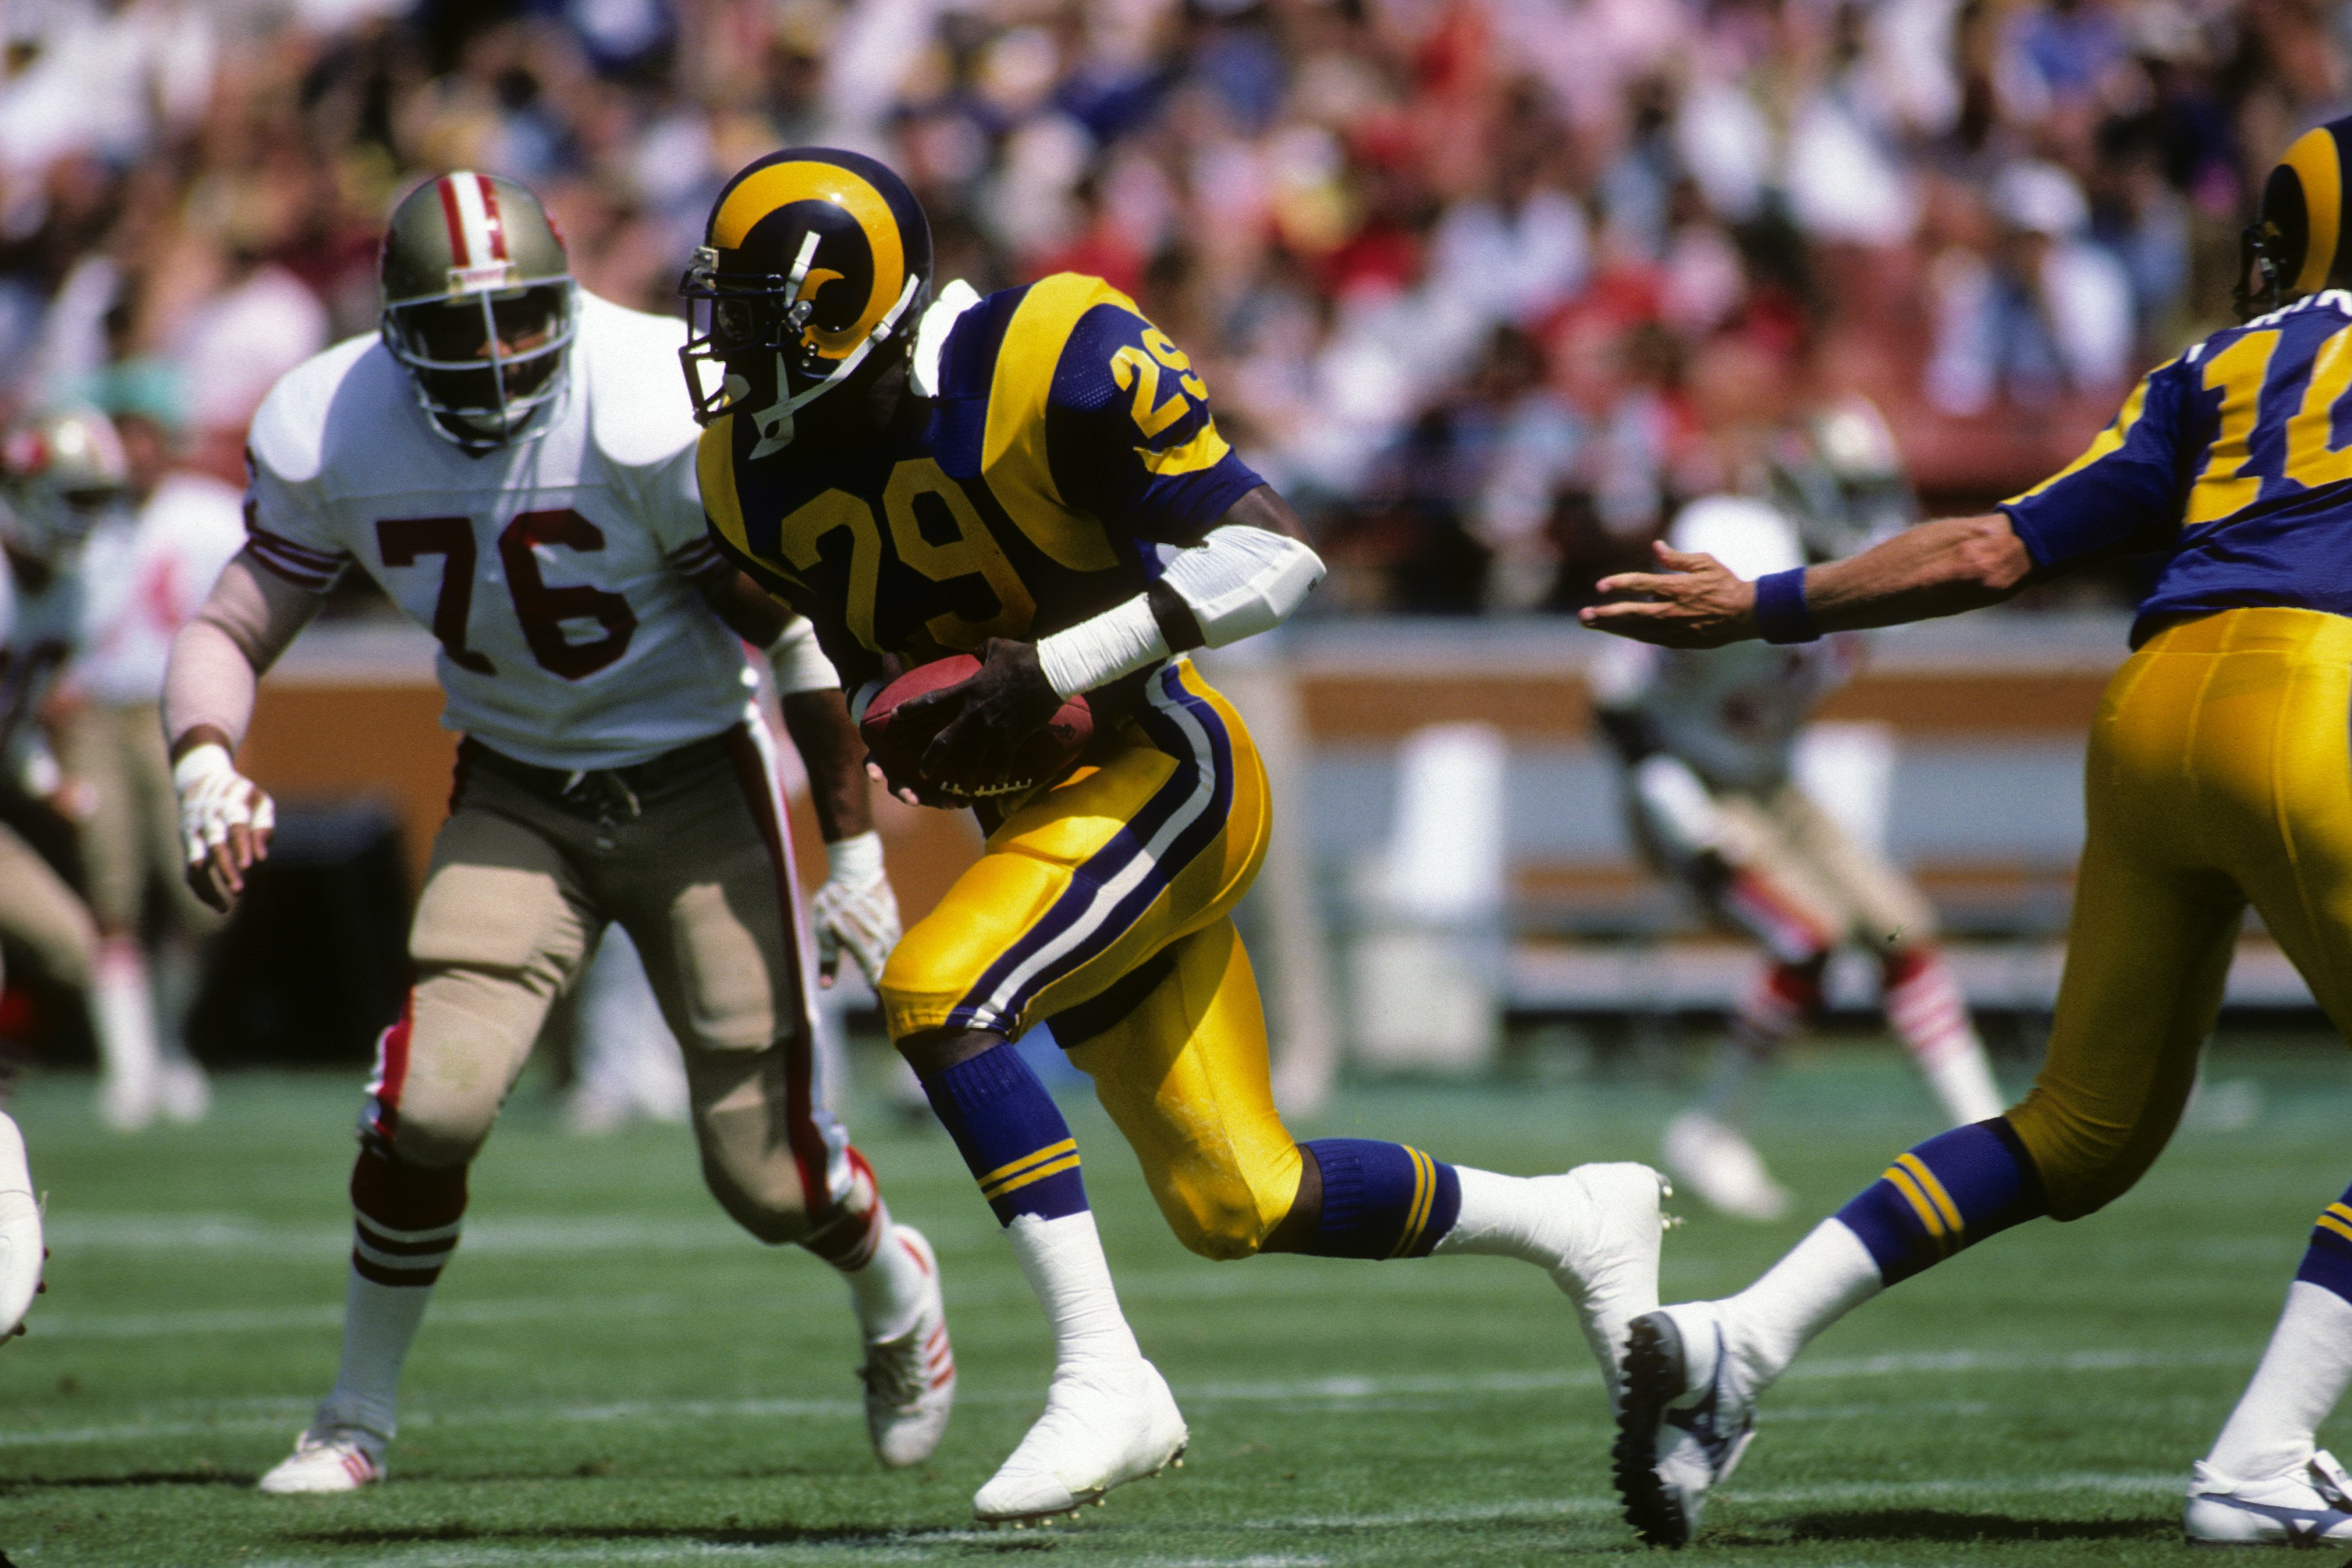 ANAHEIM, CA - SEPTEMBER 14:  Running back Eric Dickerson #28 of the Los Angeles Rams runs with the ball against defensive back Dwaine Board #76 of the San Francisco 49ers during the game at Anaheim Stadium on September 14, 1986 in Anaheim, California.   T